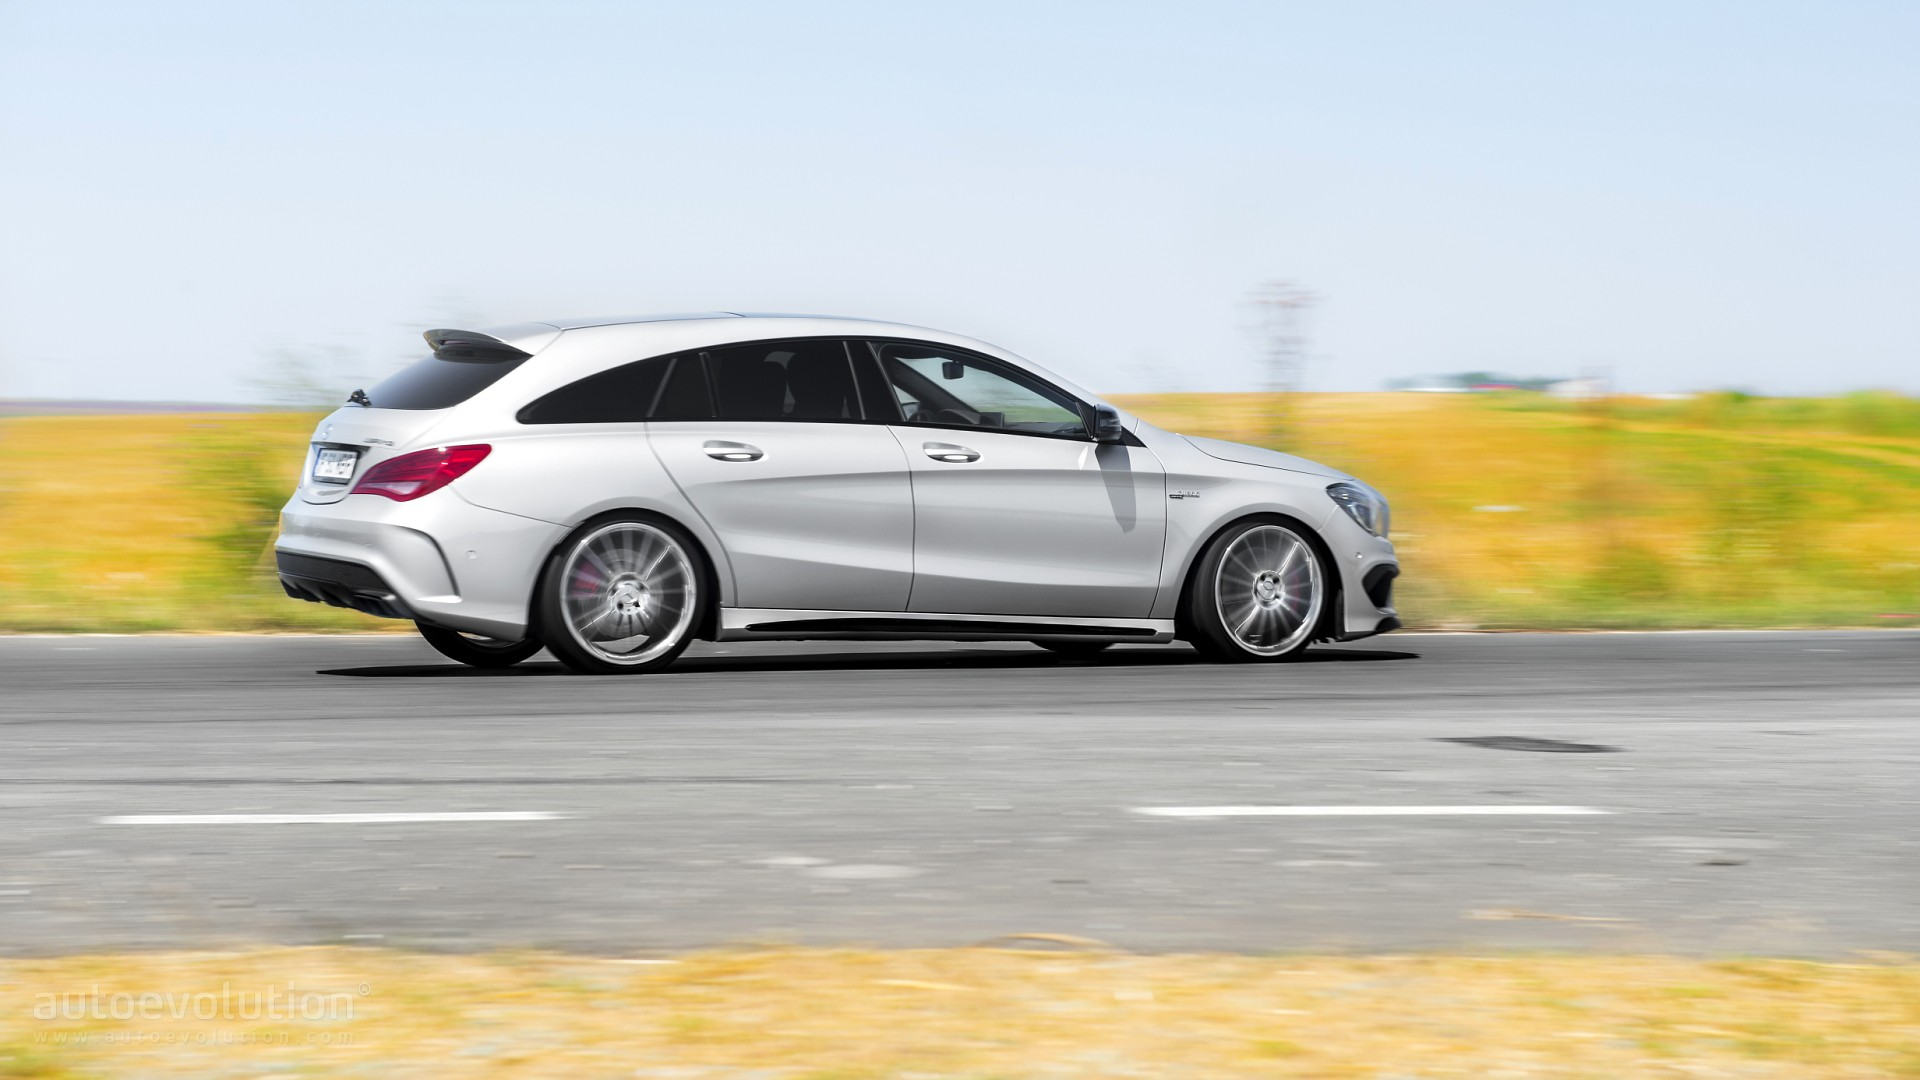 2016 Mercedes Benz CLA45 AMG Shooting Brake HD Wallpapers Fashion 1920x1080